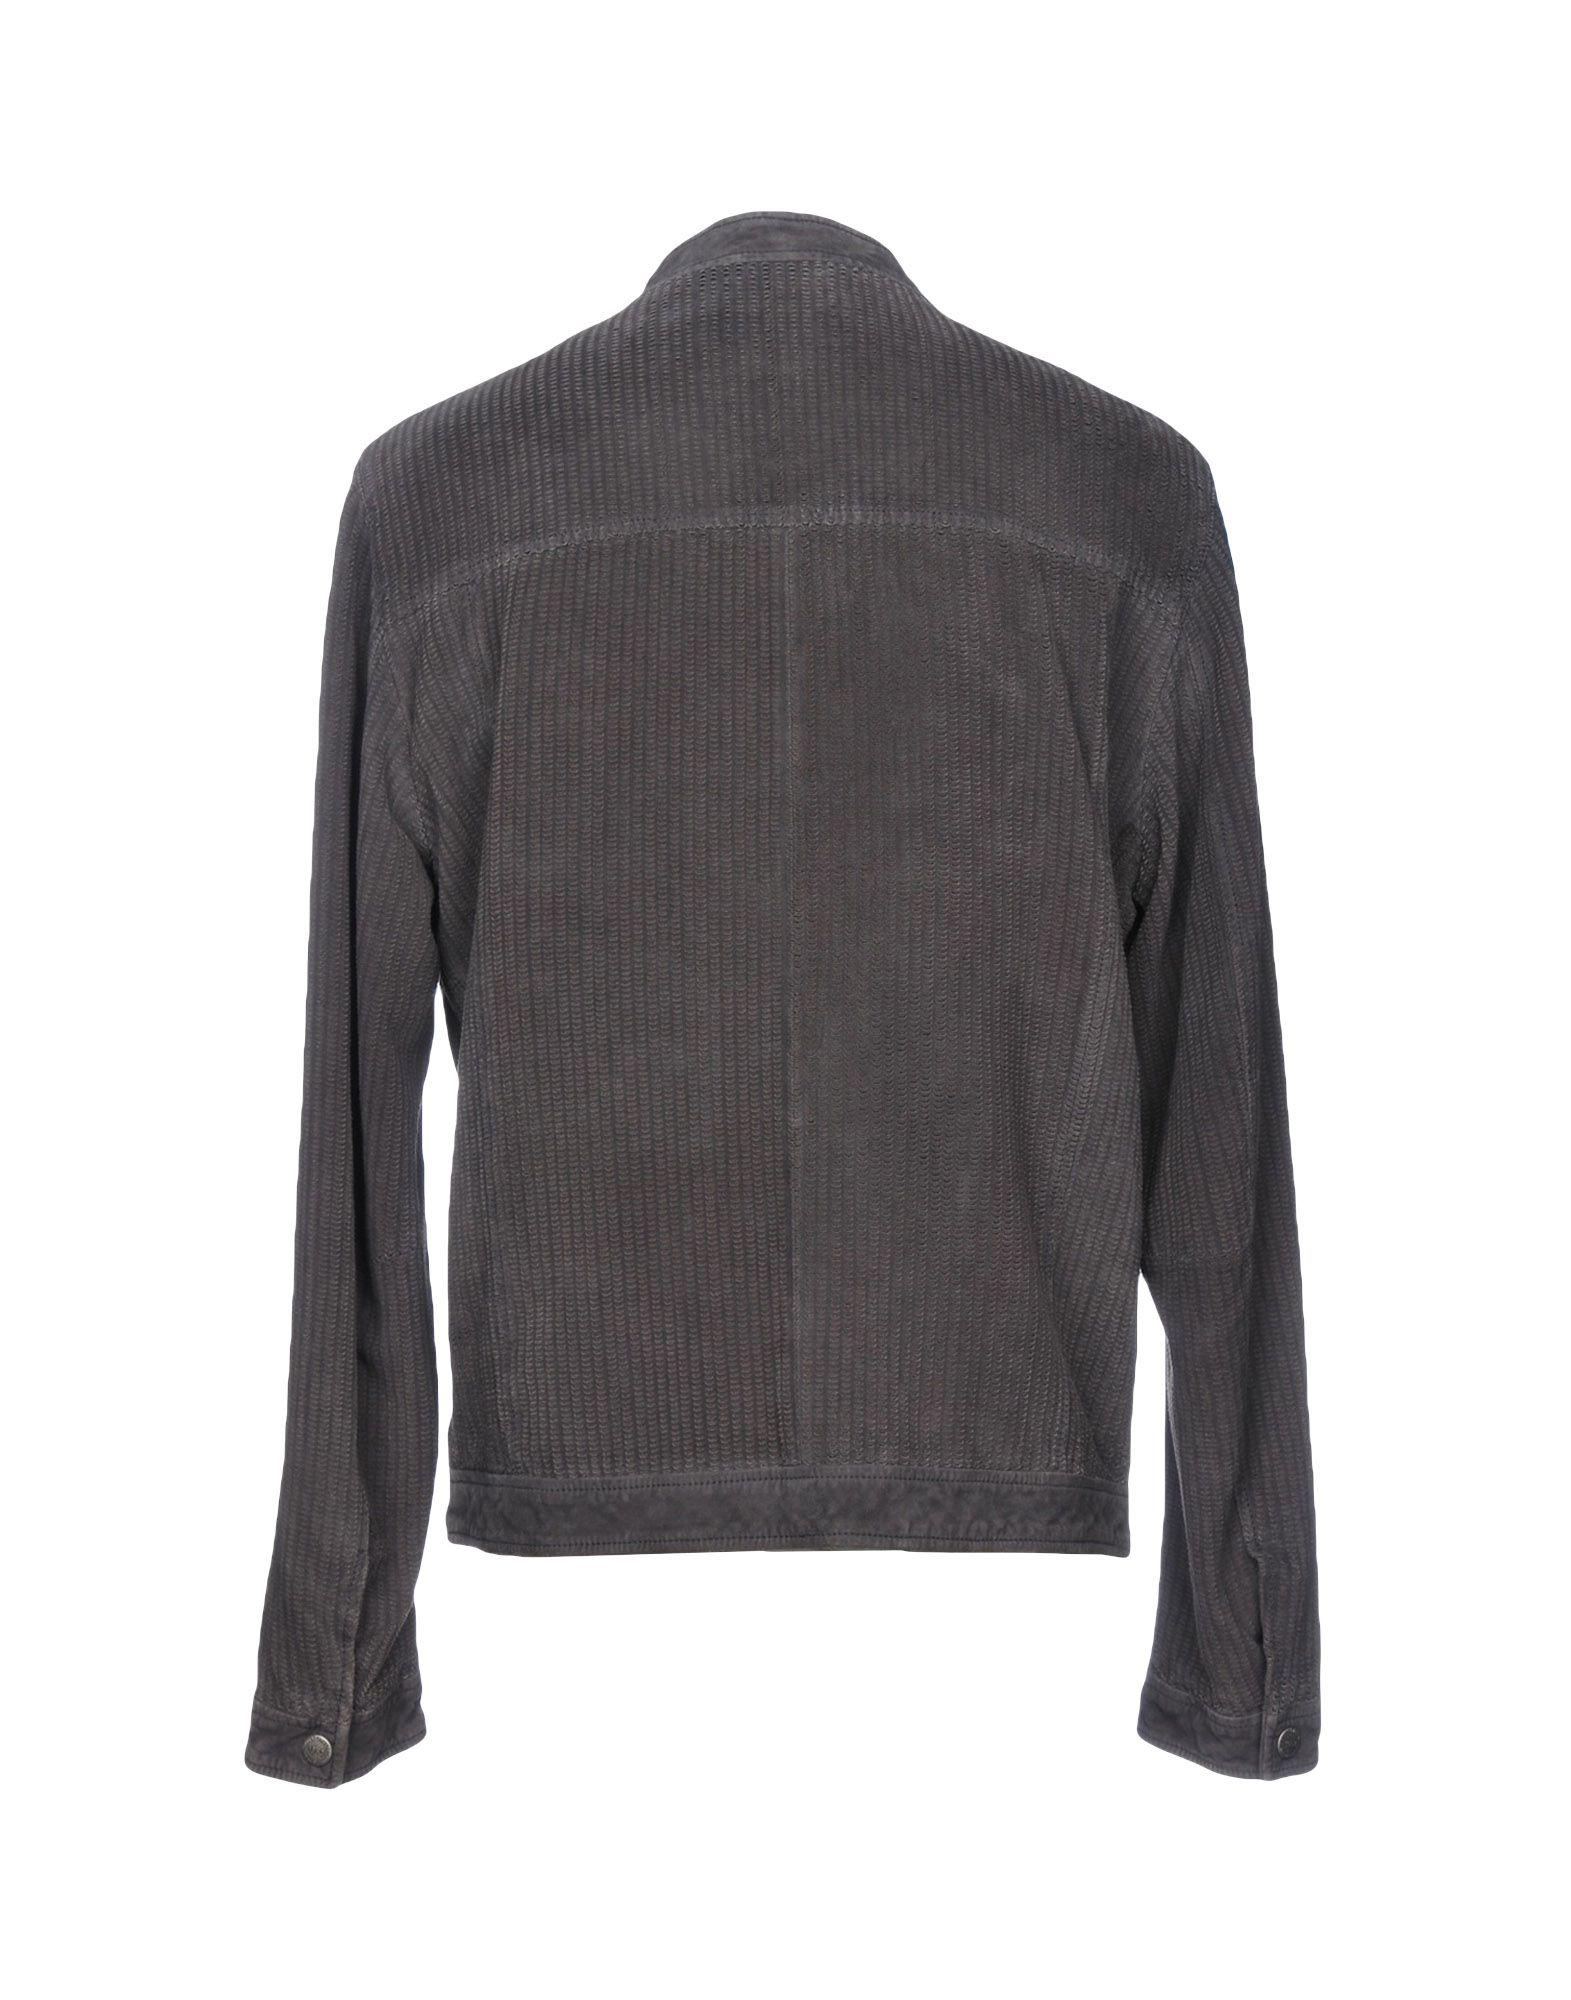 Minoronzoni 1953 Leather Jacket in Lead (Grey) for Men